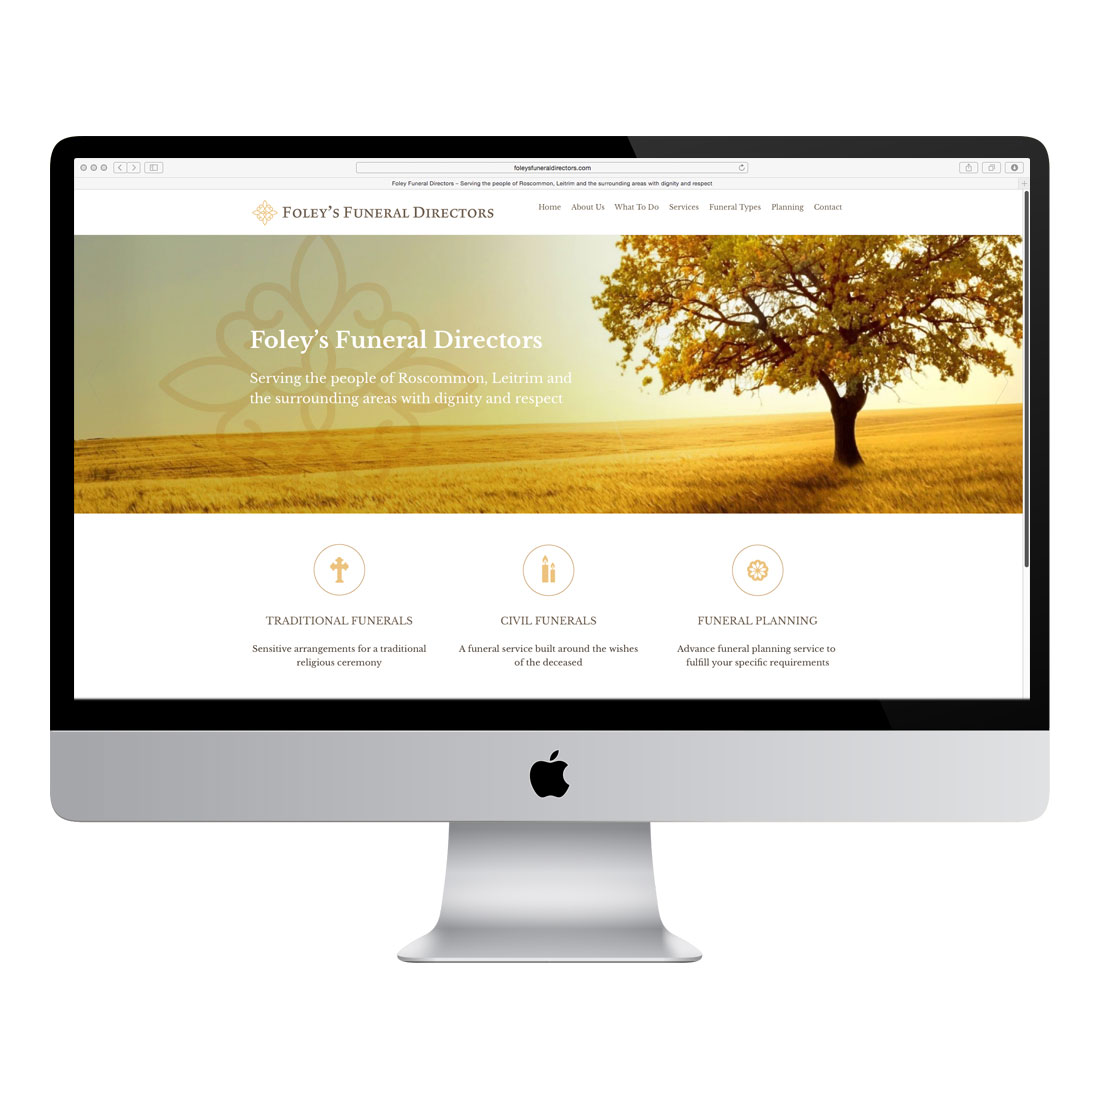 Foley 39 s funeral directors website design swift print design - Funeral home web design ...